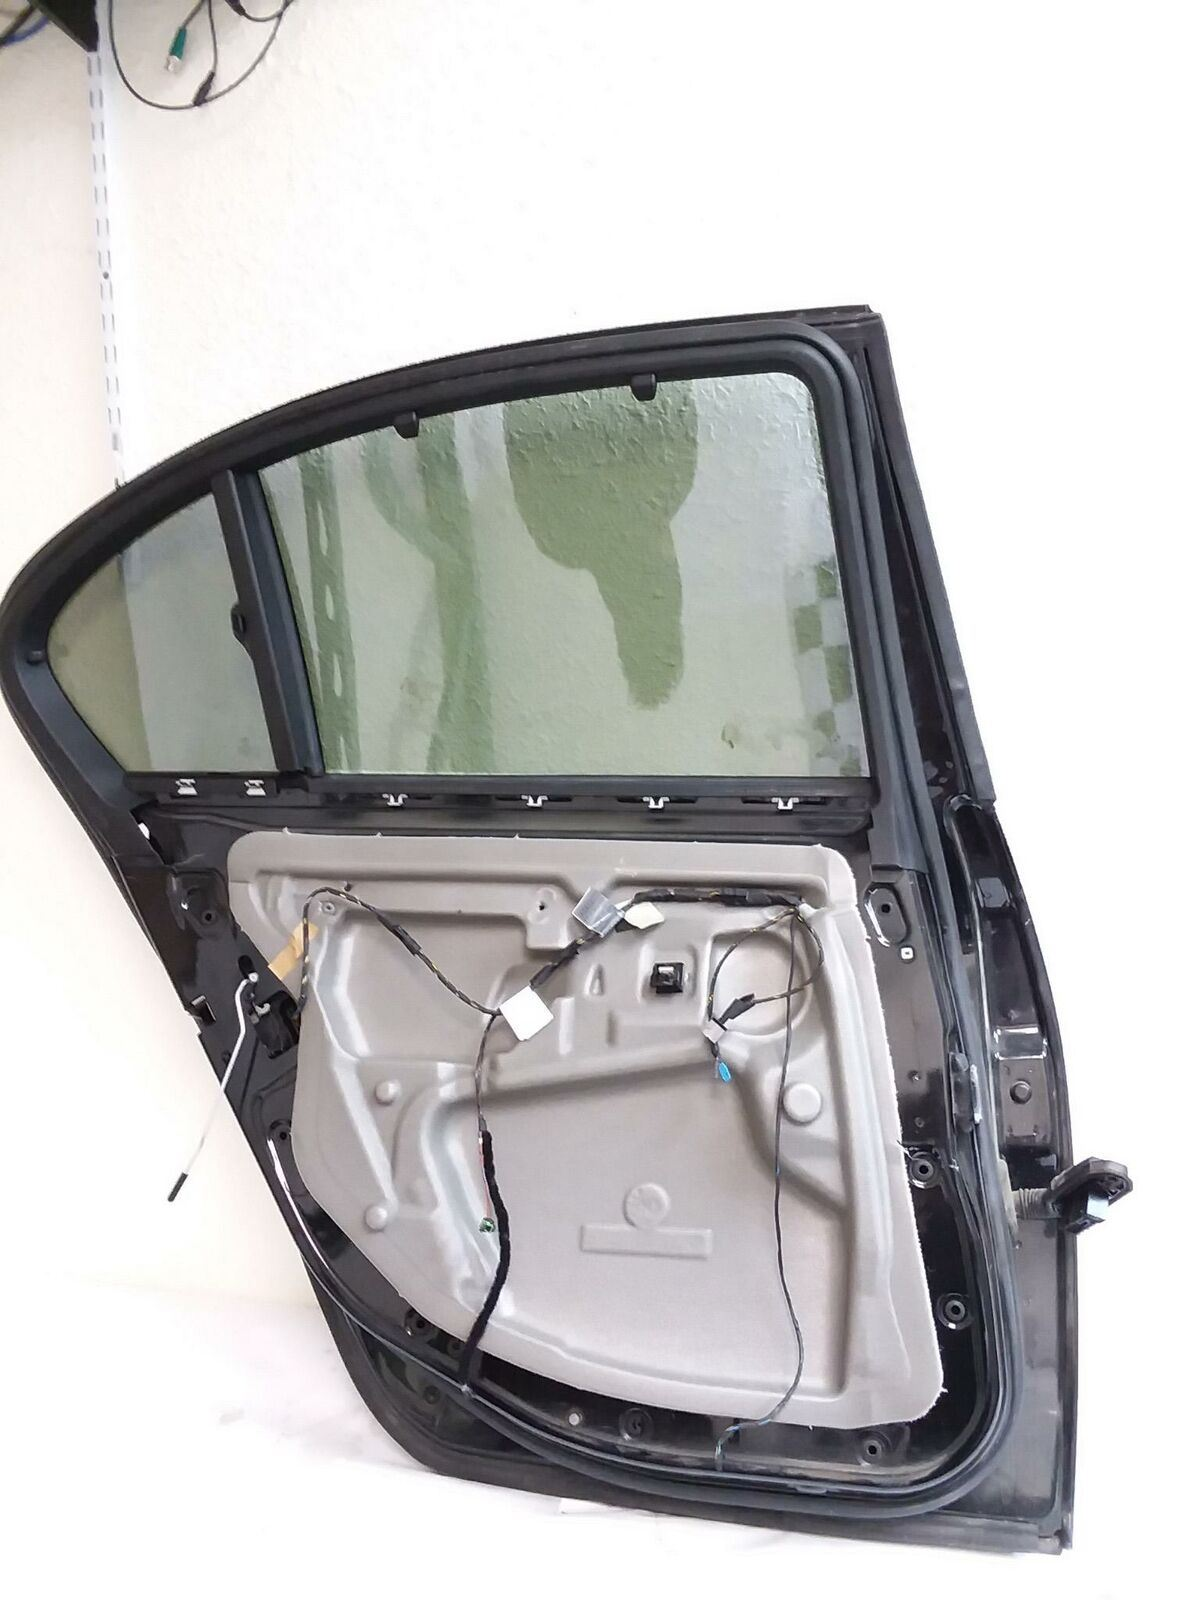 BMW REAR LEFT DOOR E60 M5 545i 550i 525i 530i 535i 528i 2004-2010 OEM 4152720234